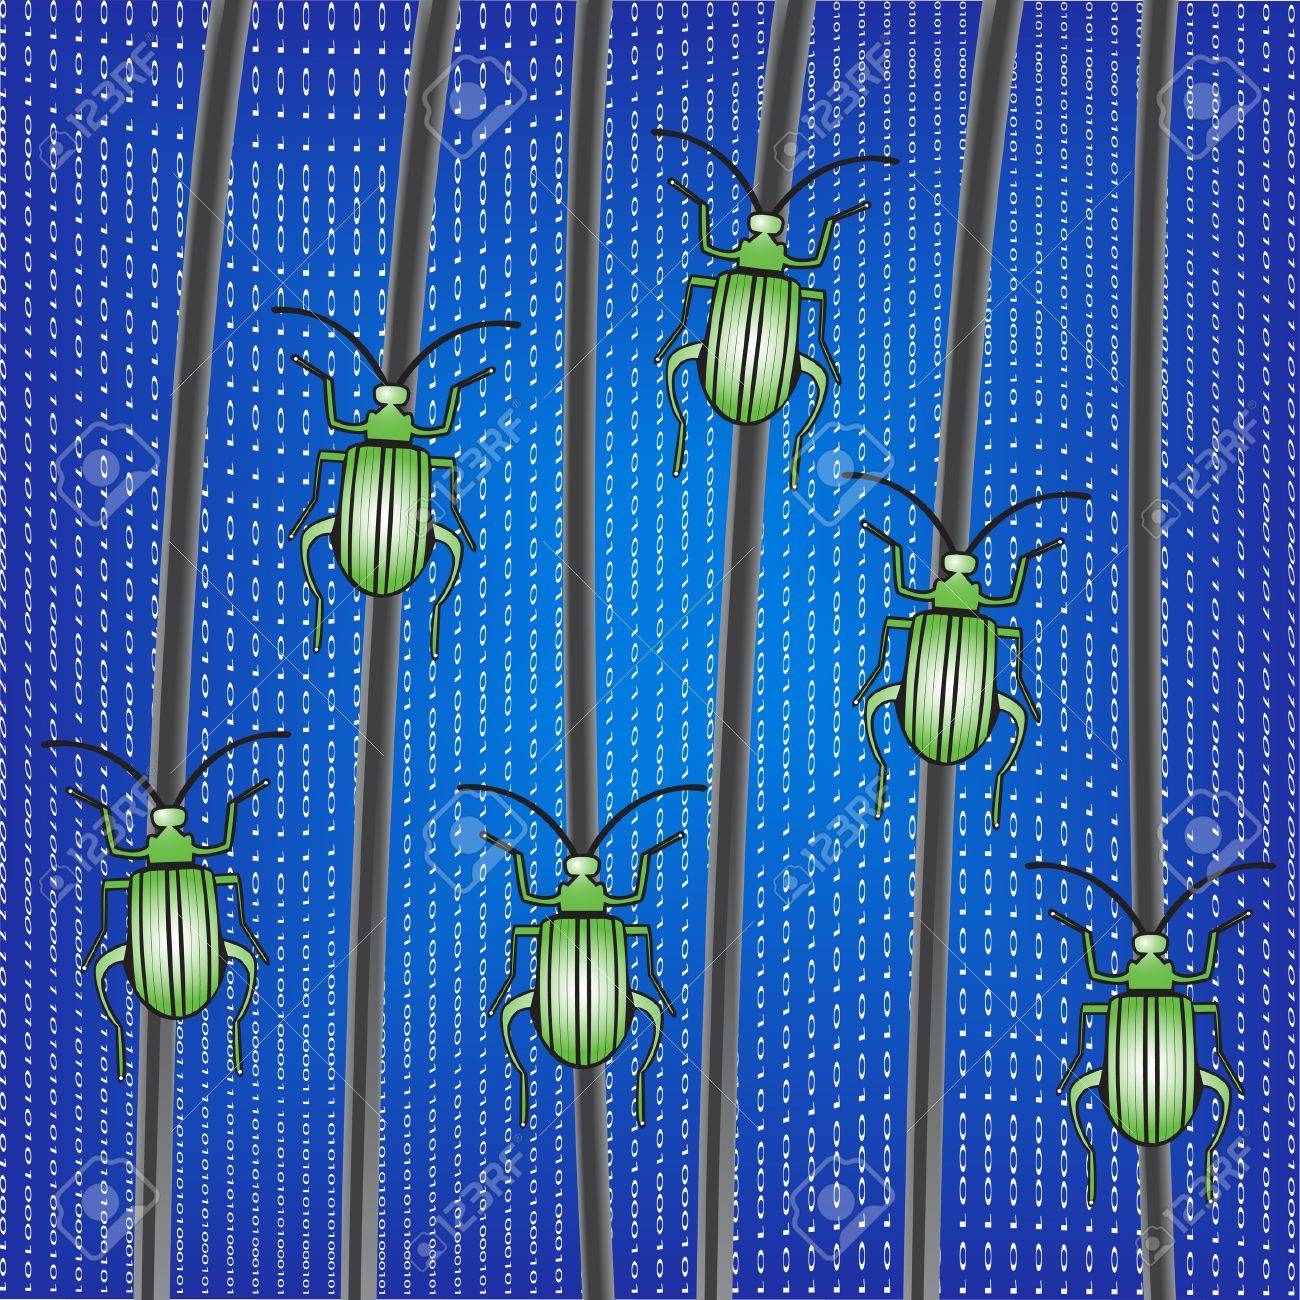 Bugs on a network cables. Vector Illustration. Stock Vector - 16219378